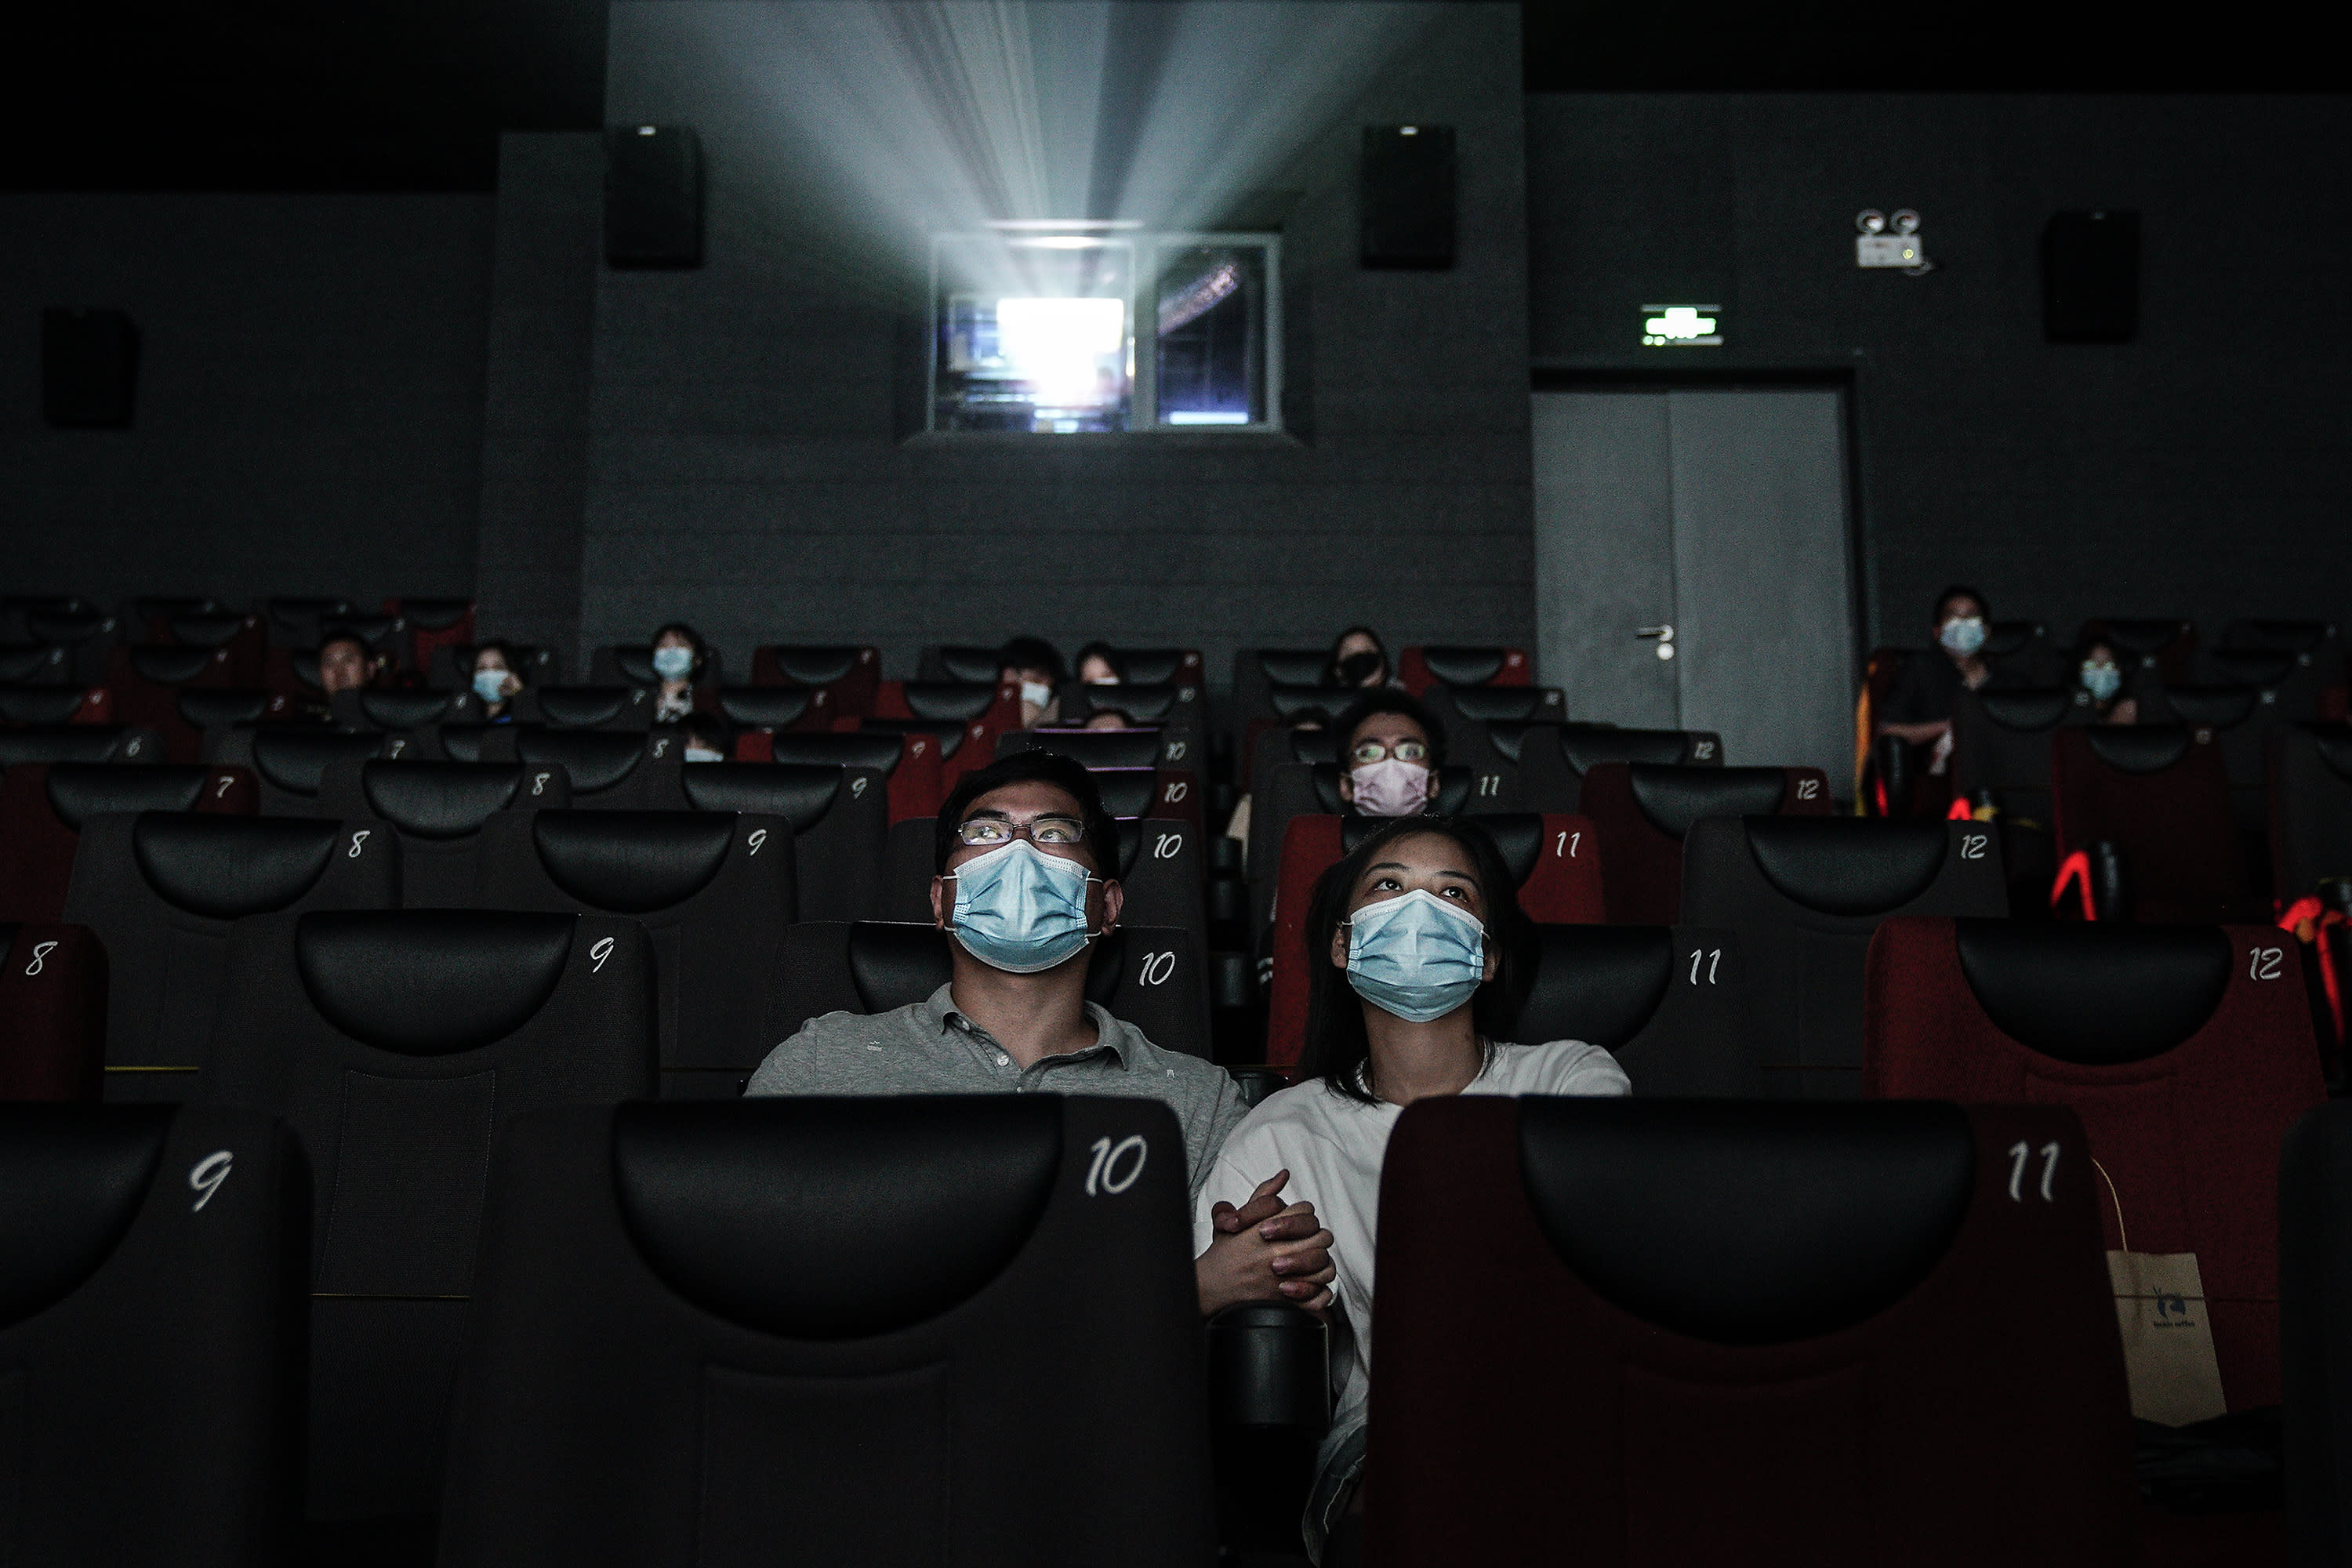 WUHAN, CHINA - JULY 20: (CHINA OUT)Residents watch a movie in a cinema in Wuhan on July 20, 2020 in Wuhan ,Hubei Province,China.Taking various measures against COVID-19, cinemas in the city reopened in an orderly manner on Monday. The China Film Administration, in a circular last week, allowed cinemas in low-risk areas to resume operation with effective epidemic prevention measures in place. (Photo by Getty Images)